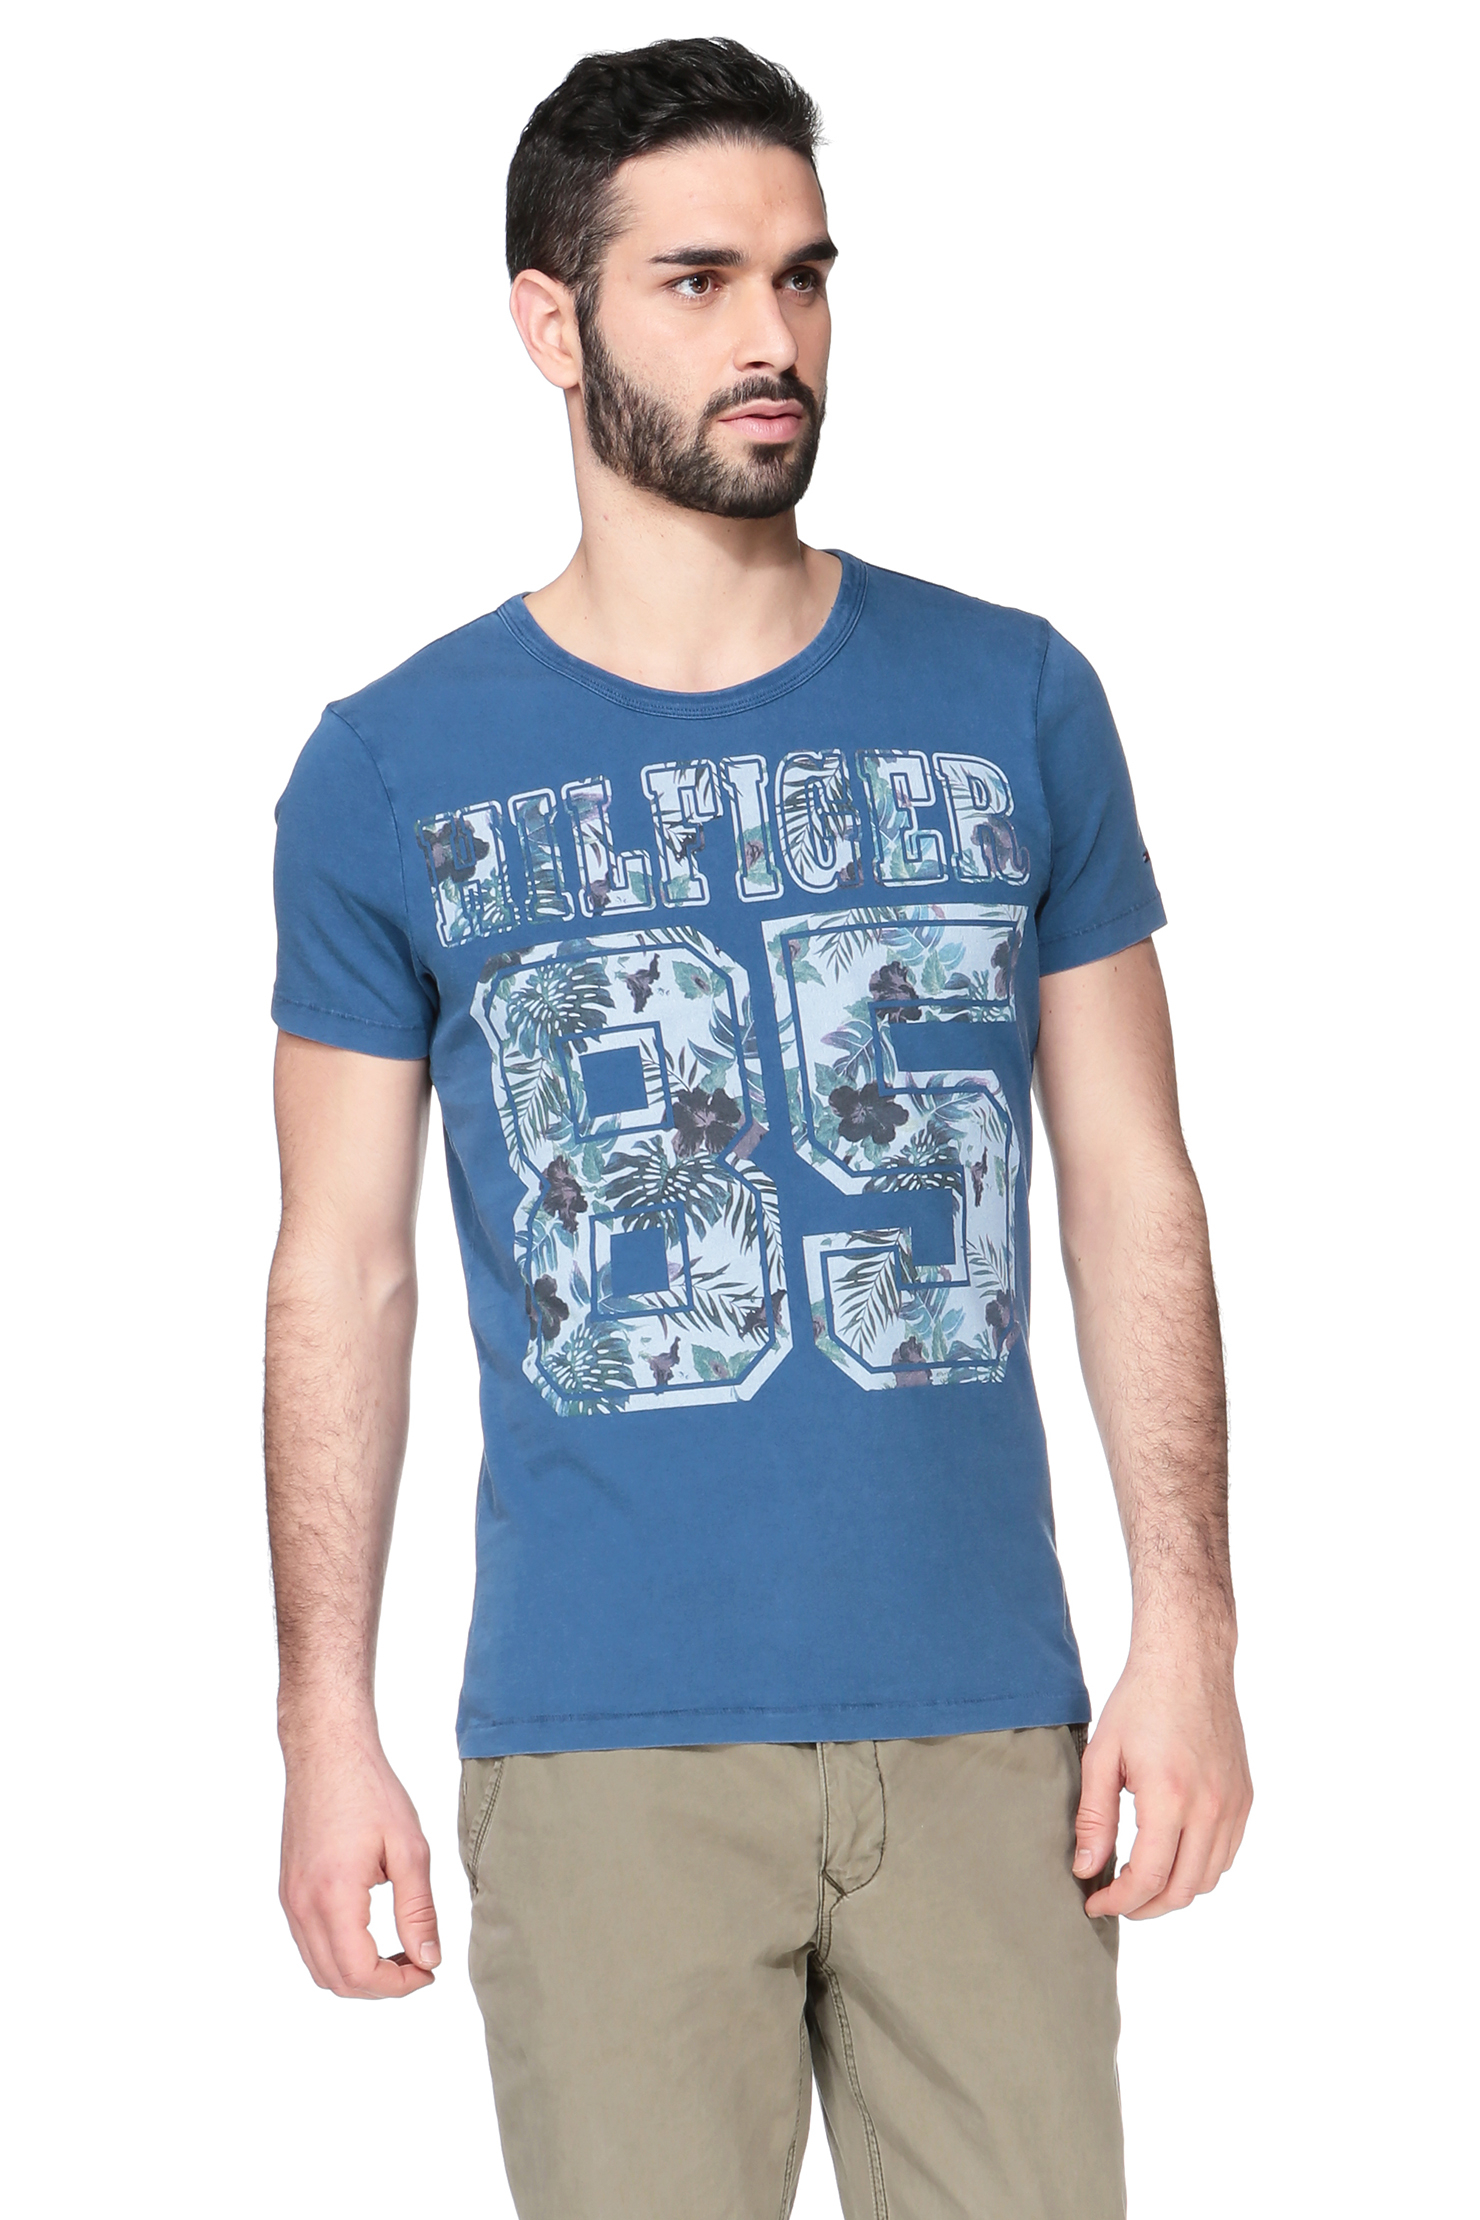 hilfiger denim blue short sleeve t shirt 1957870367 fletcher cn tee ss. Black Bedroom Furniture Sets. Home Design Ideas